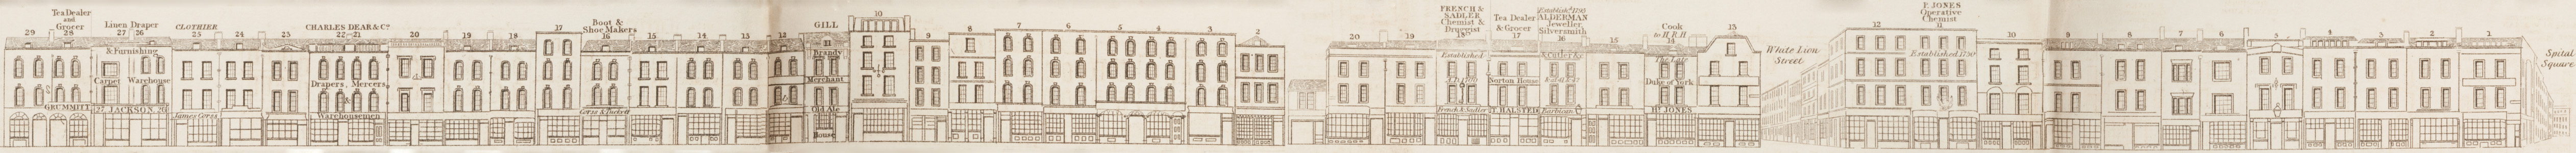 map - Tallis's London street views : No. 60. Norton Folgate and Shoreditch, division 1 (east)